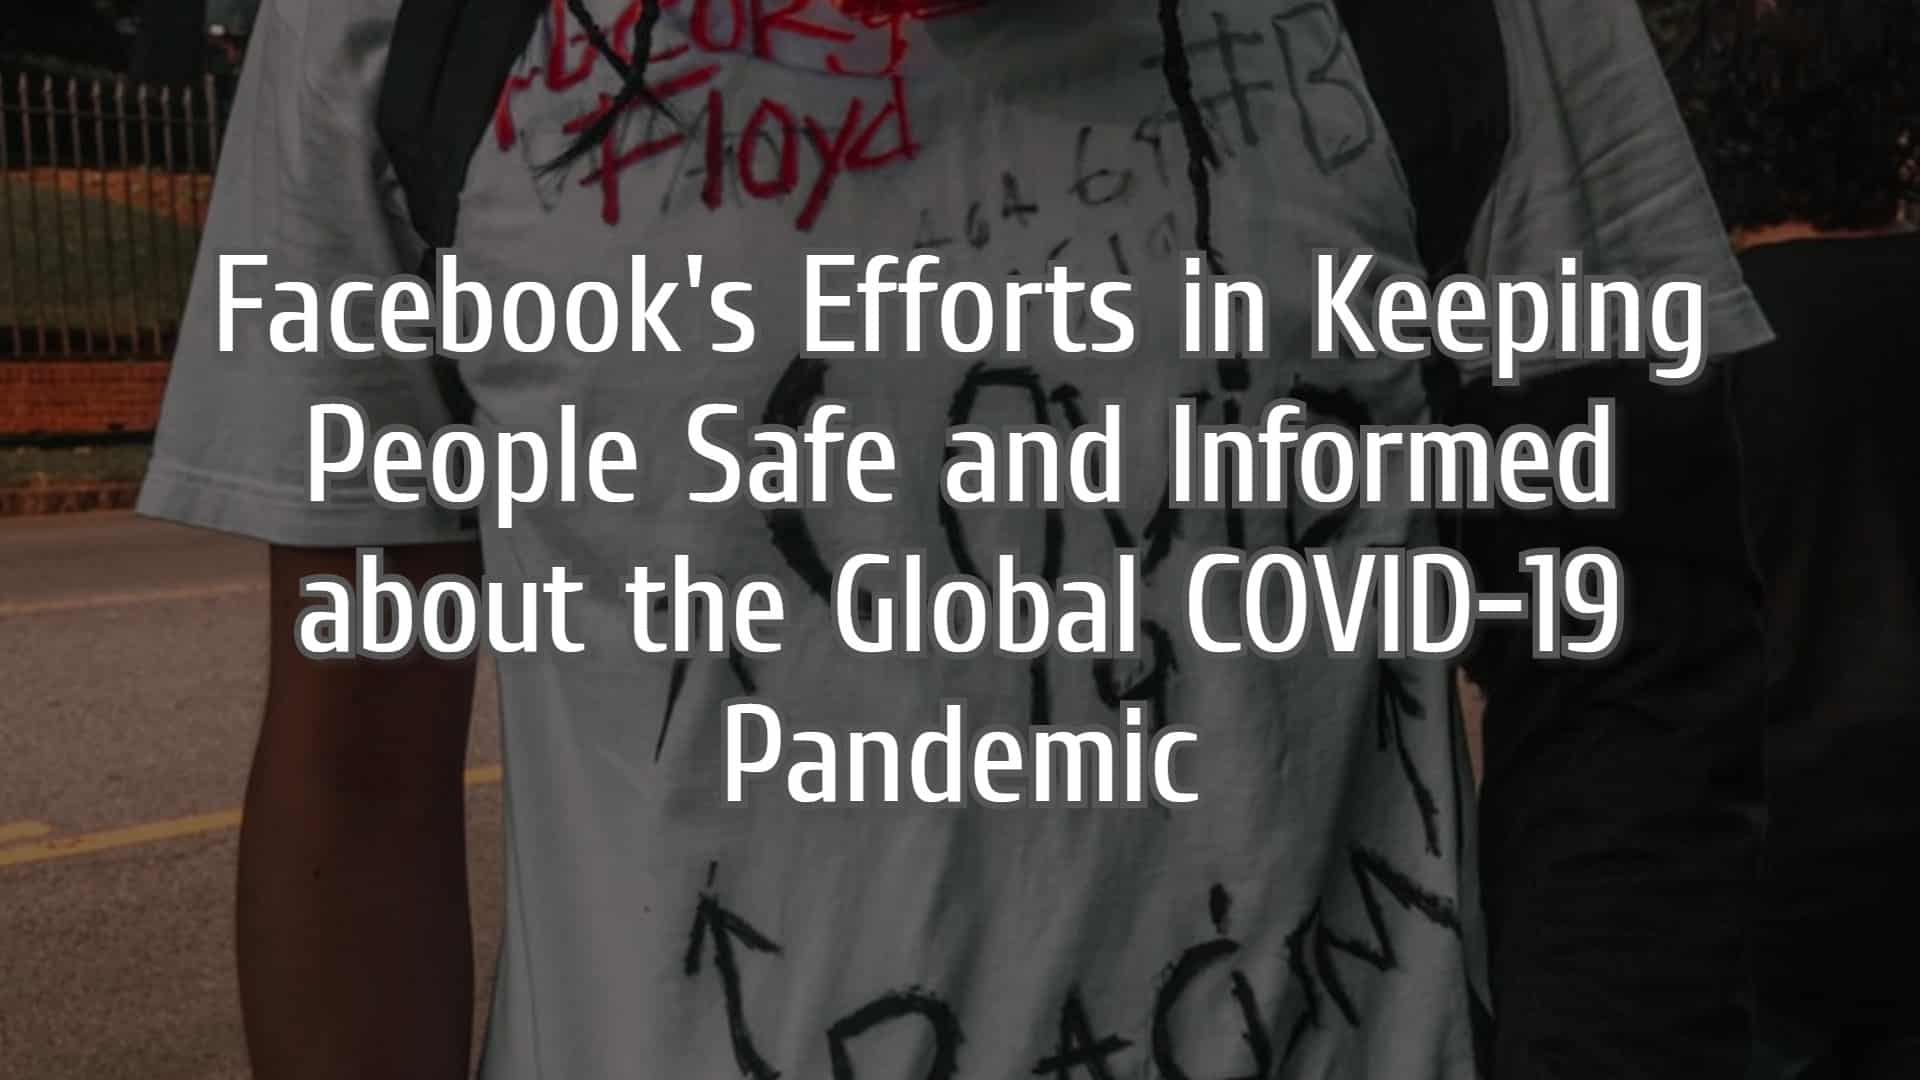 Facebook's Efforts in Keeping People Safe and Informed About the Global COVID-19 Pandemic